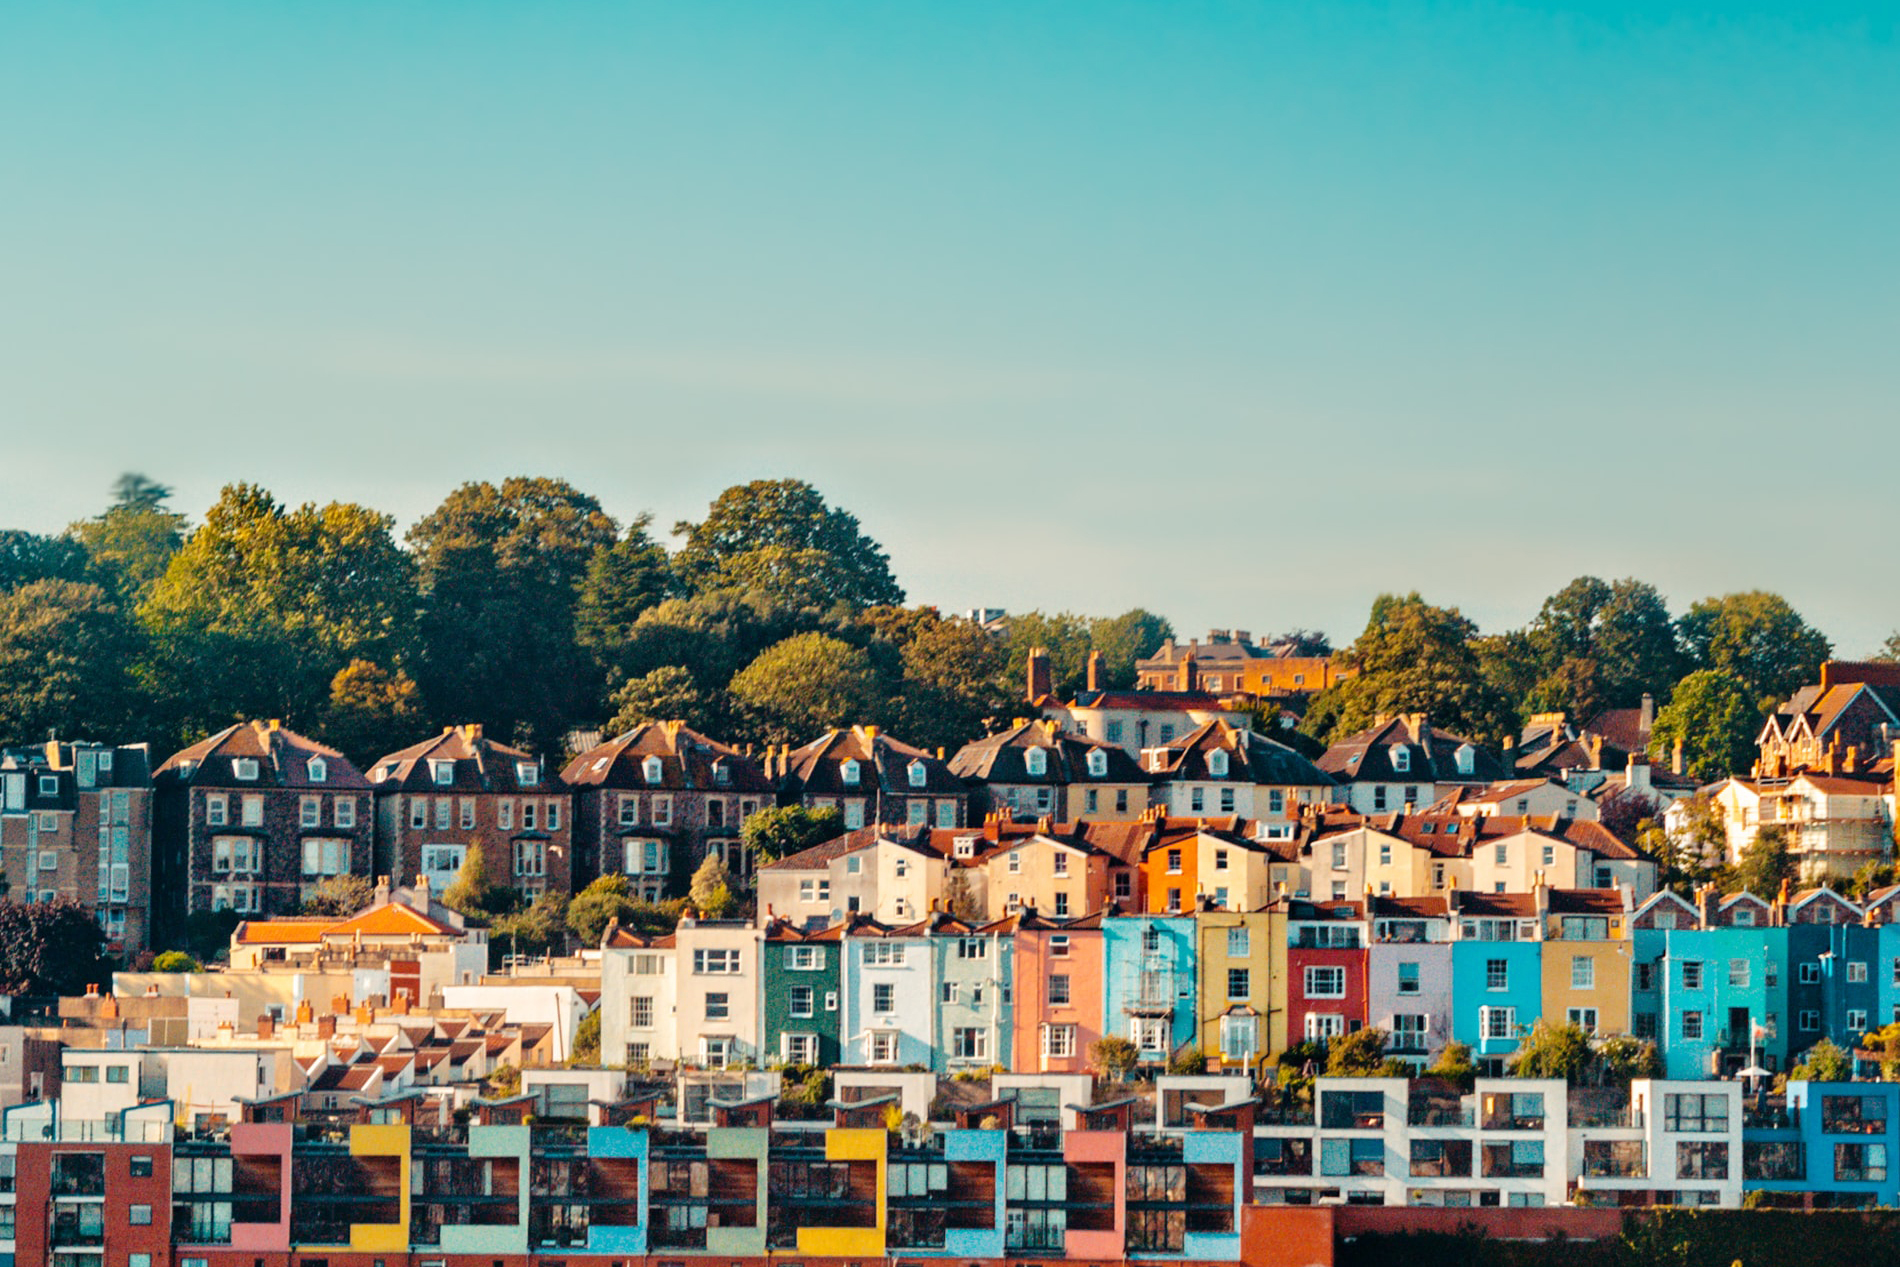 Colourful terraced houses in Bristol